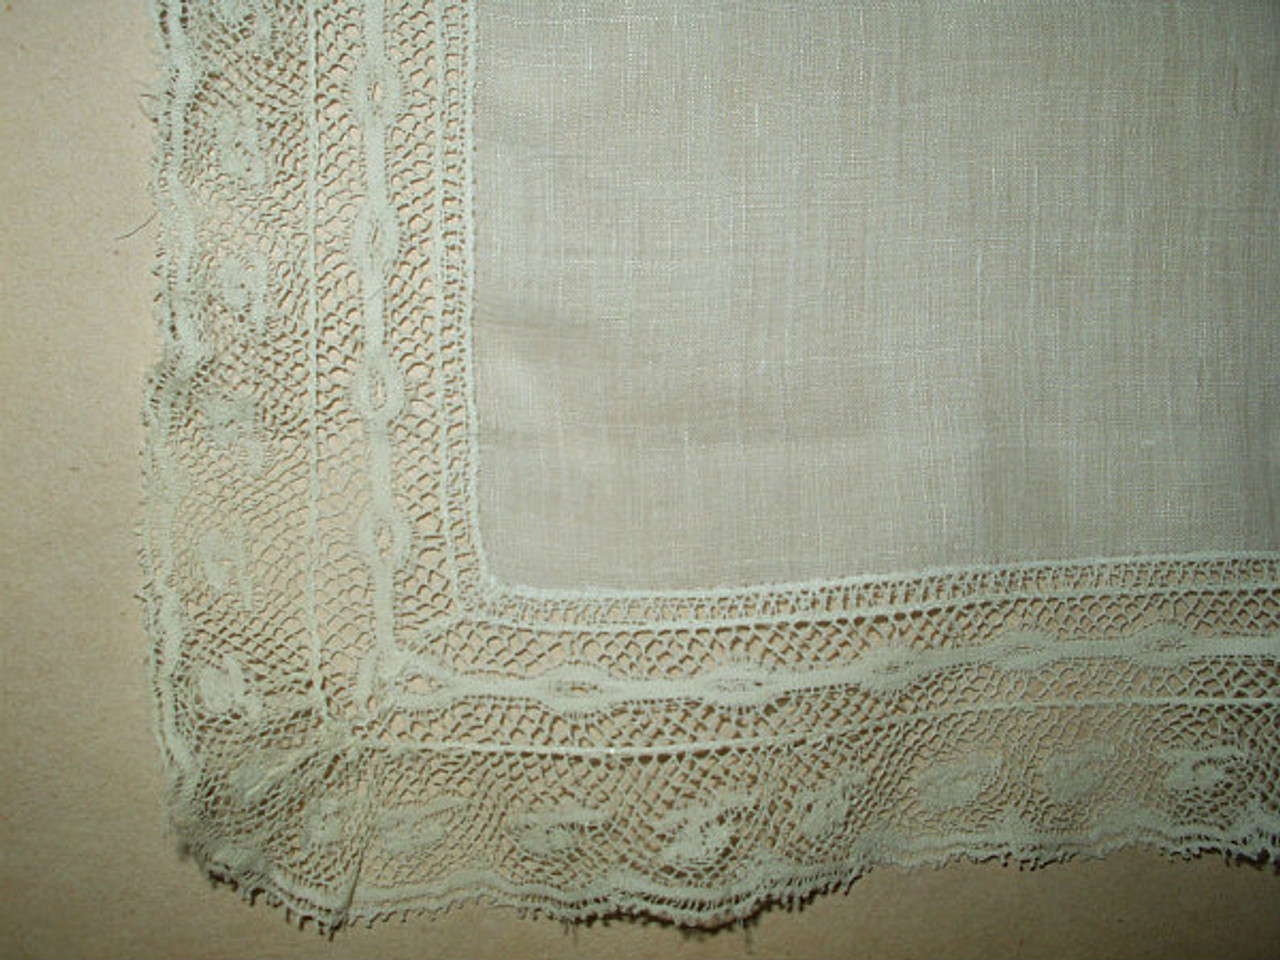 Antique Vintage Batiste Lawn Valenciennes Lace Edge 1920 1940 Handkerchief